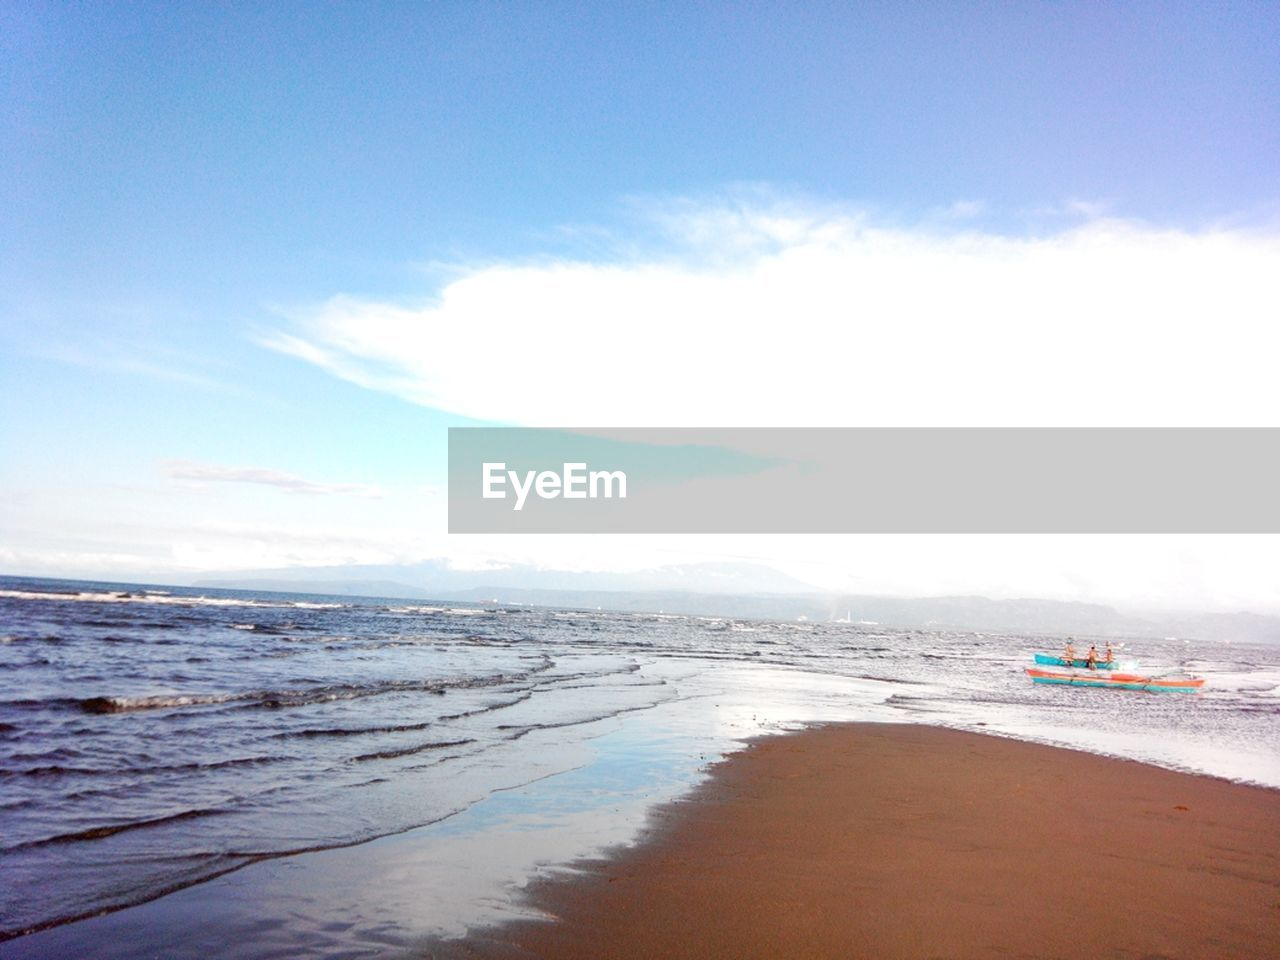 sea, beach, water, sky, sand, scenics, beauty in nature, nature, horizon over water, tranquil scene, tranquility, outdoors, cloud - sky, day, no people, vacations, travel destinations, wave